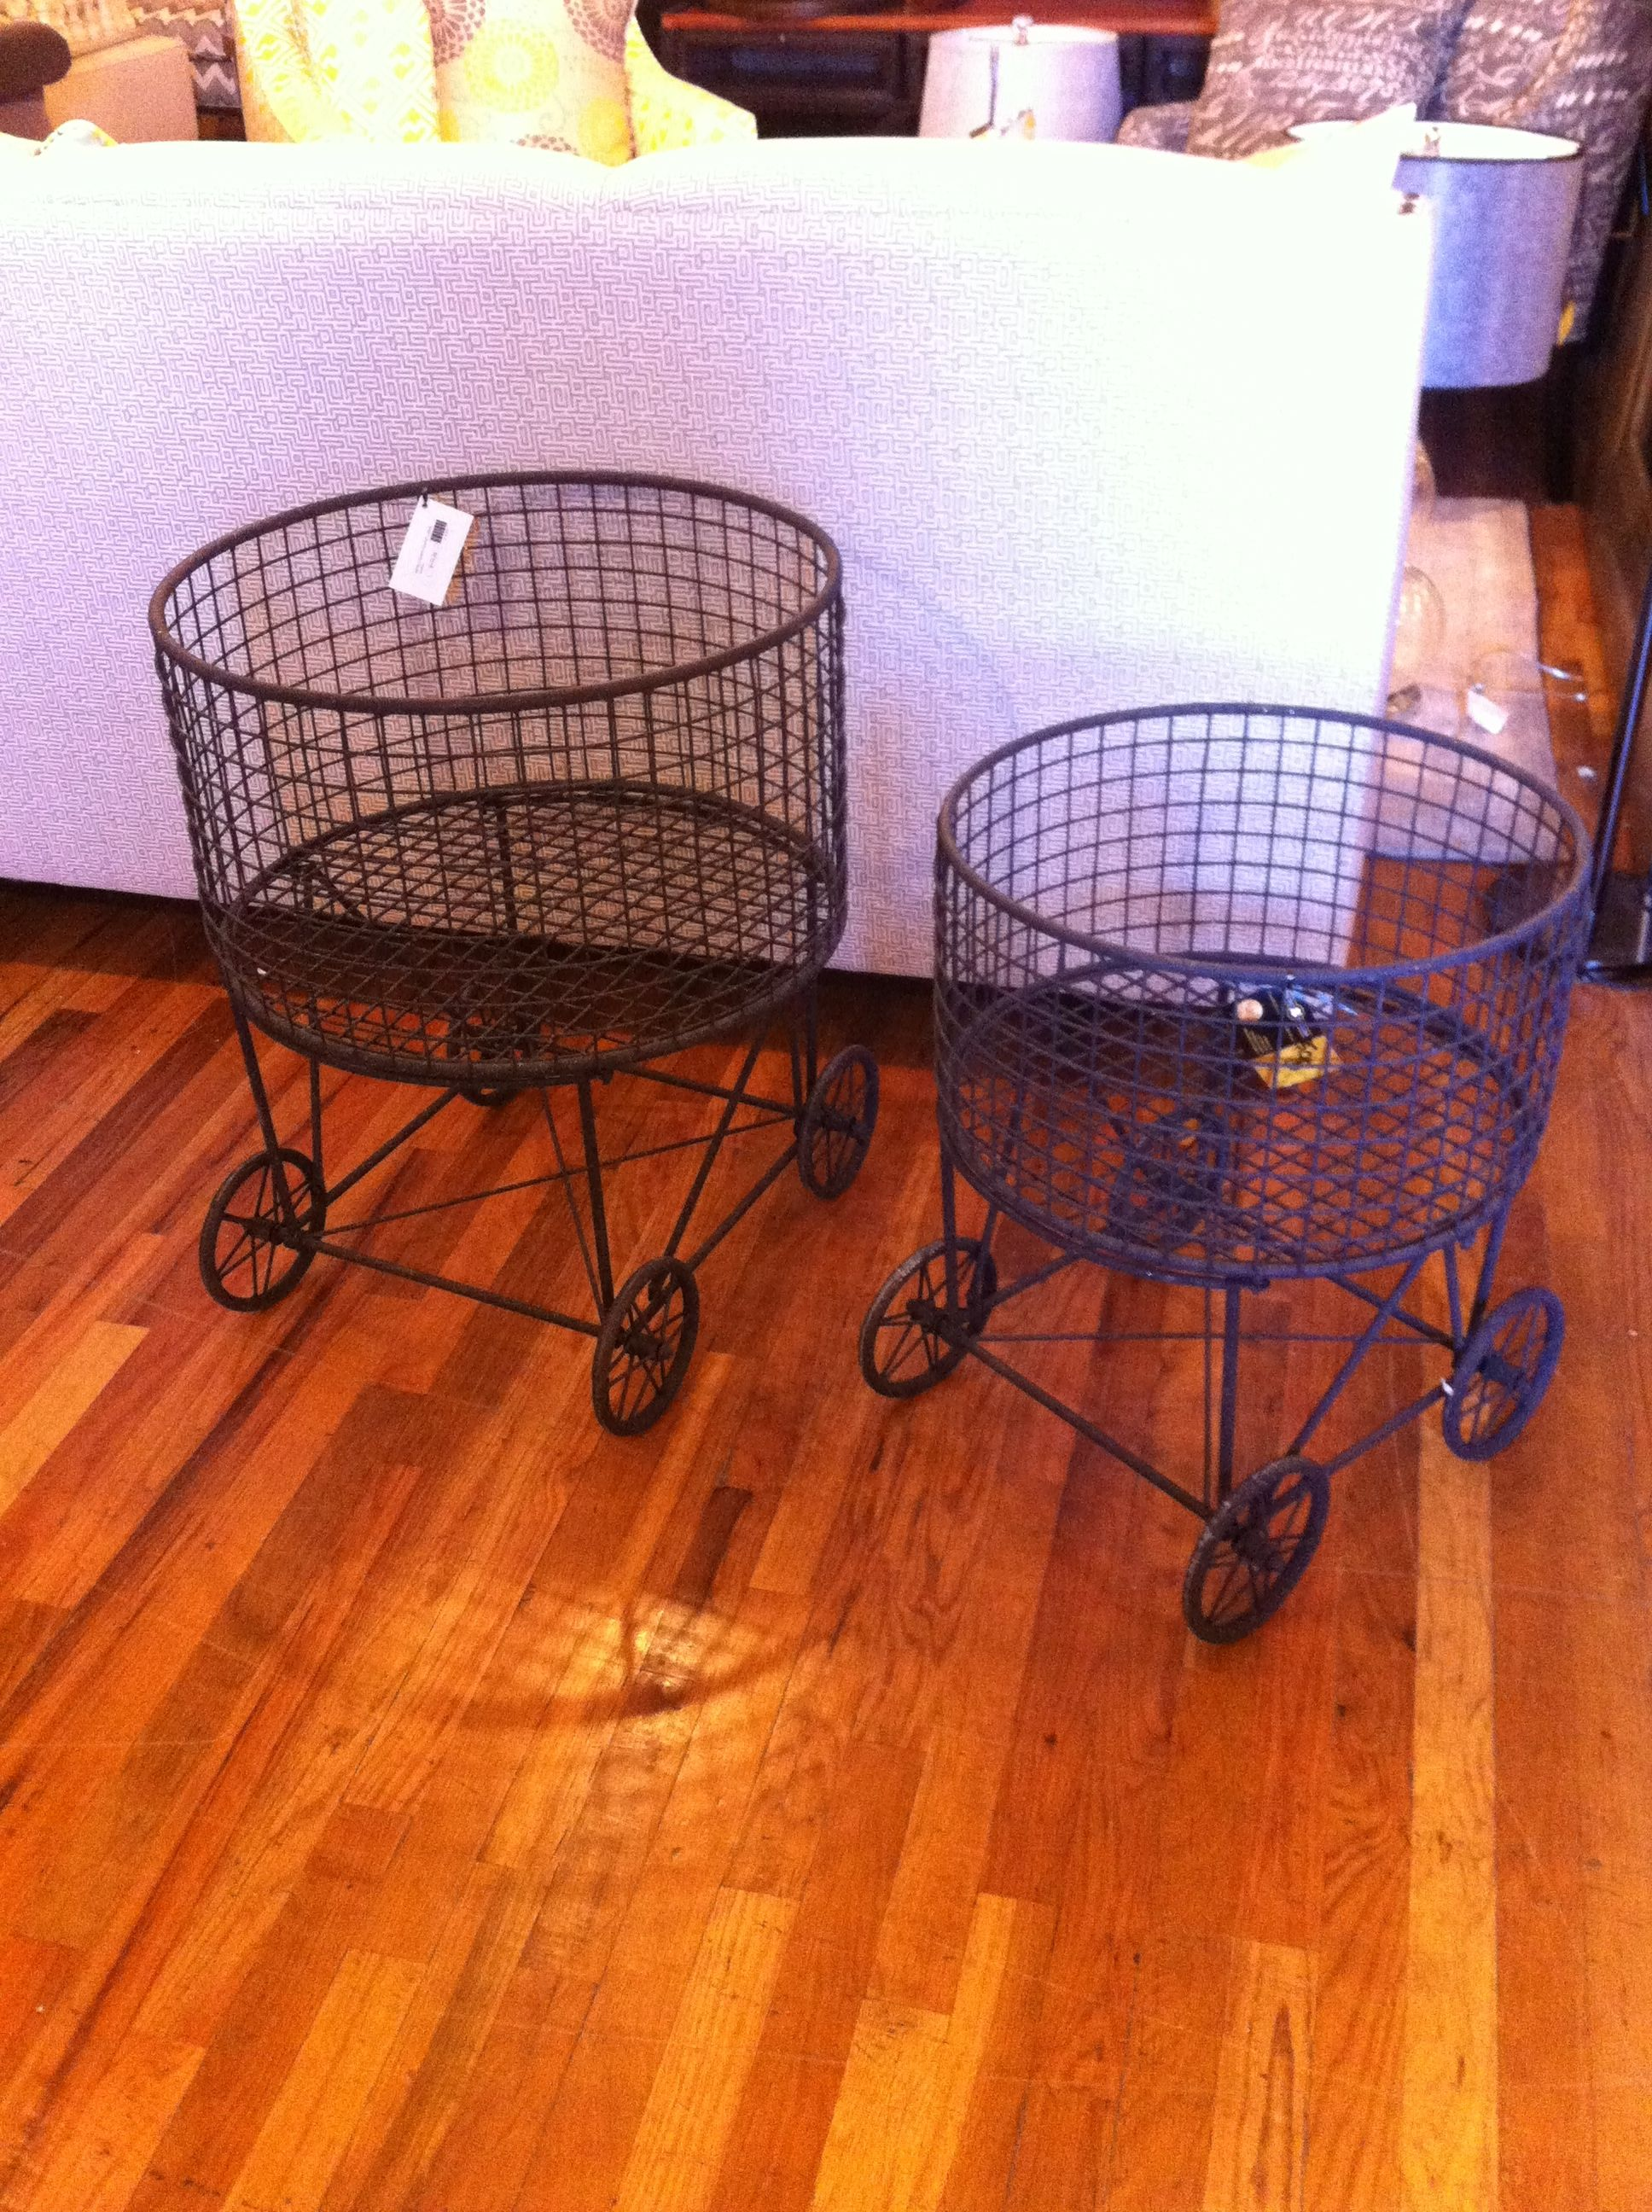 Adorable Cart Baskets At Osmond Designs In Orem And Lehi Utah